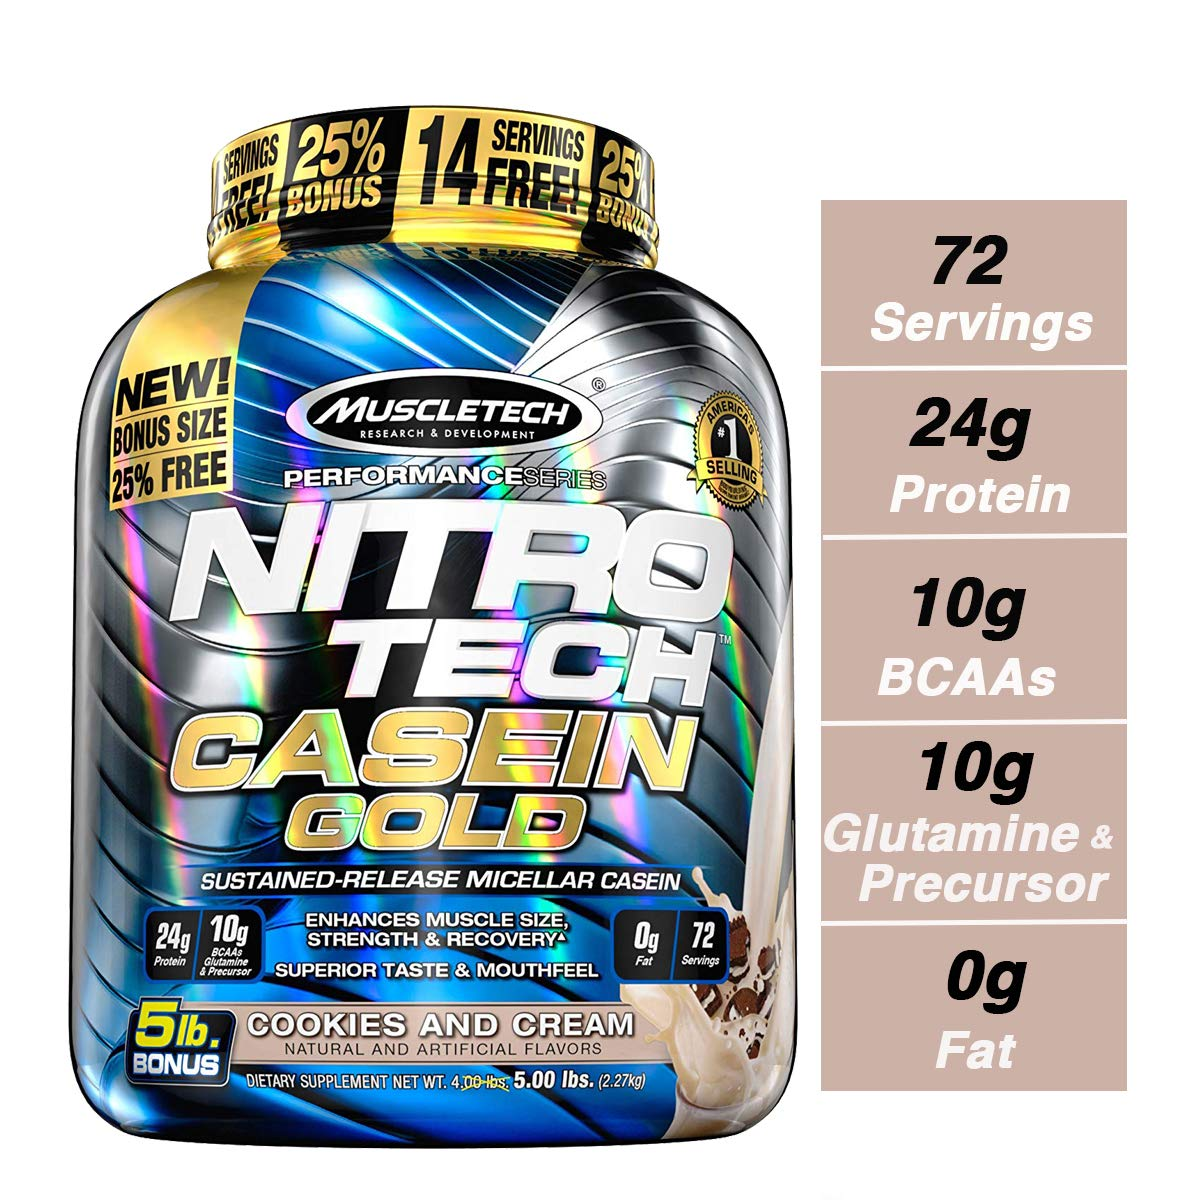 MuscleTech NitroTech Casein Gold Protein Powder, Sustained-Release Micellar Casein, Cookies Cream, 5lbs